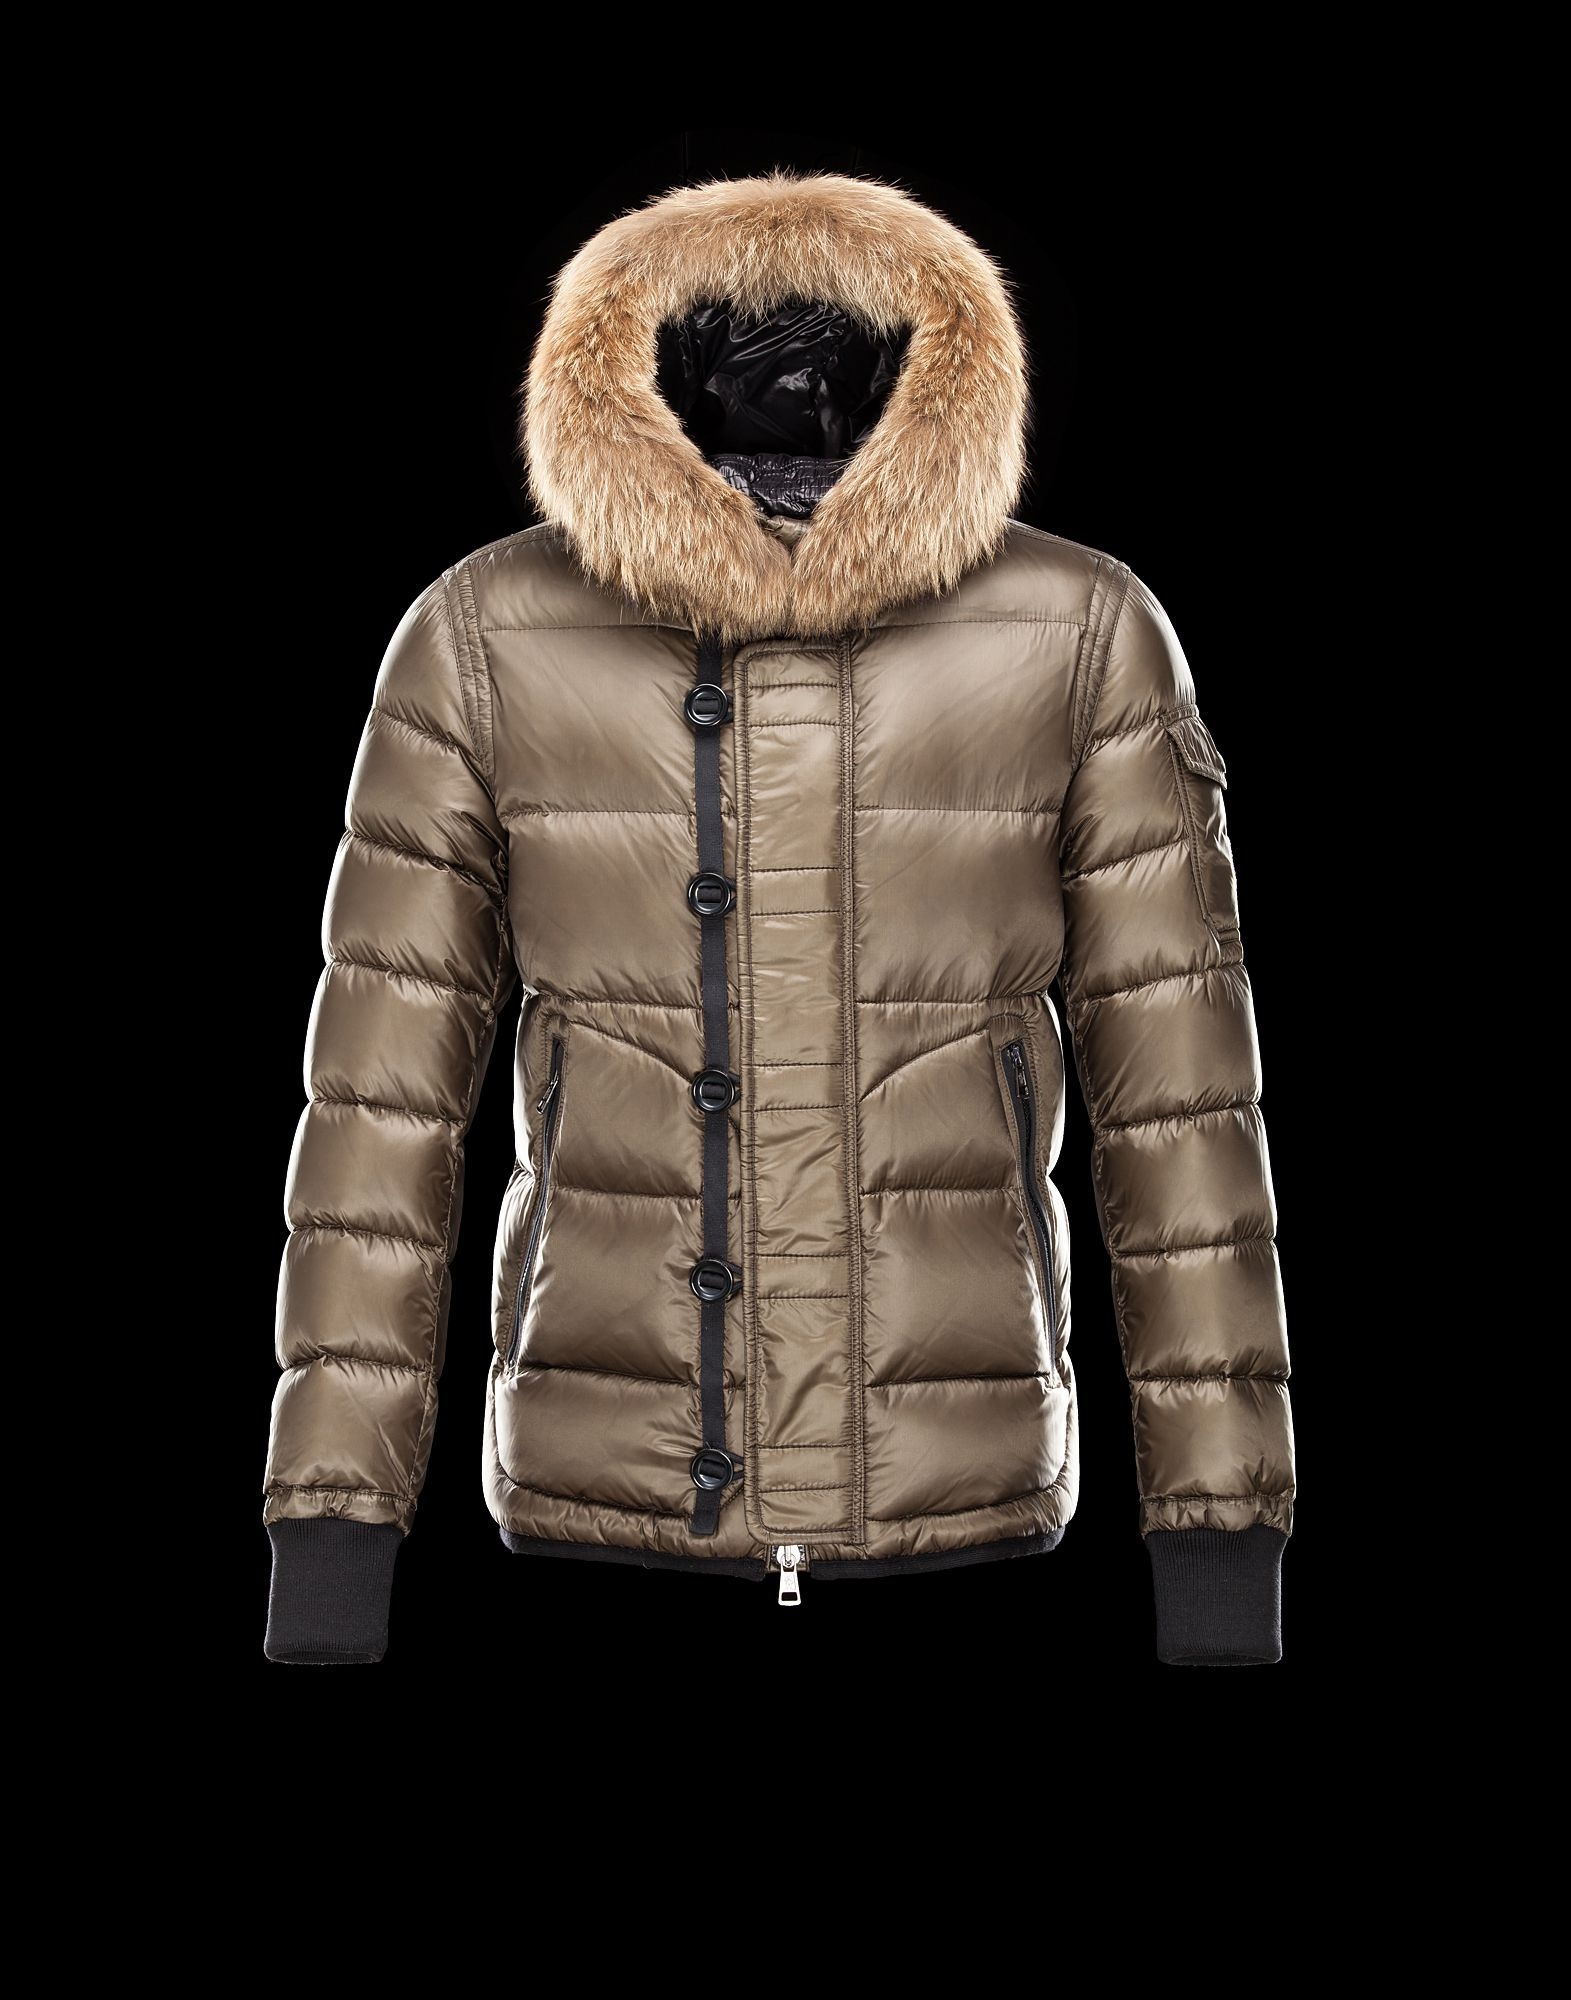 Moncler Quilted Puffer Jacket Online the New Moncler